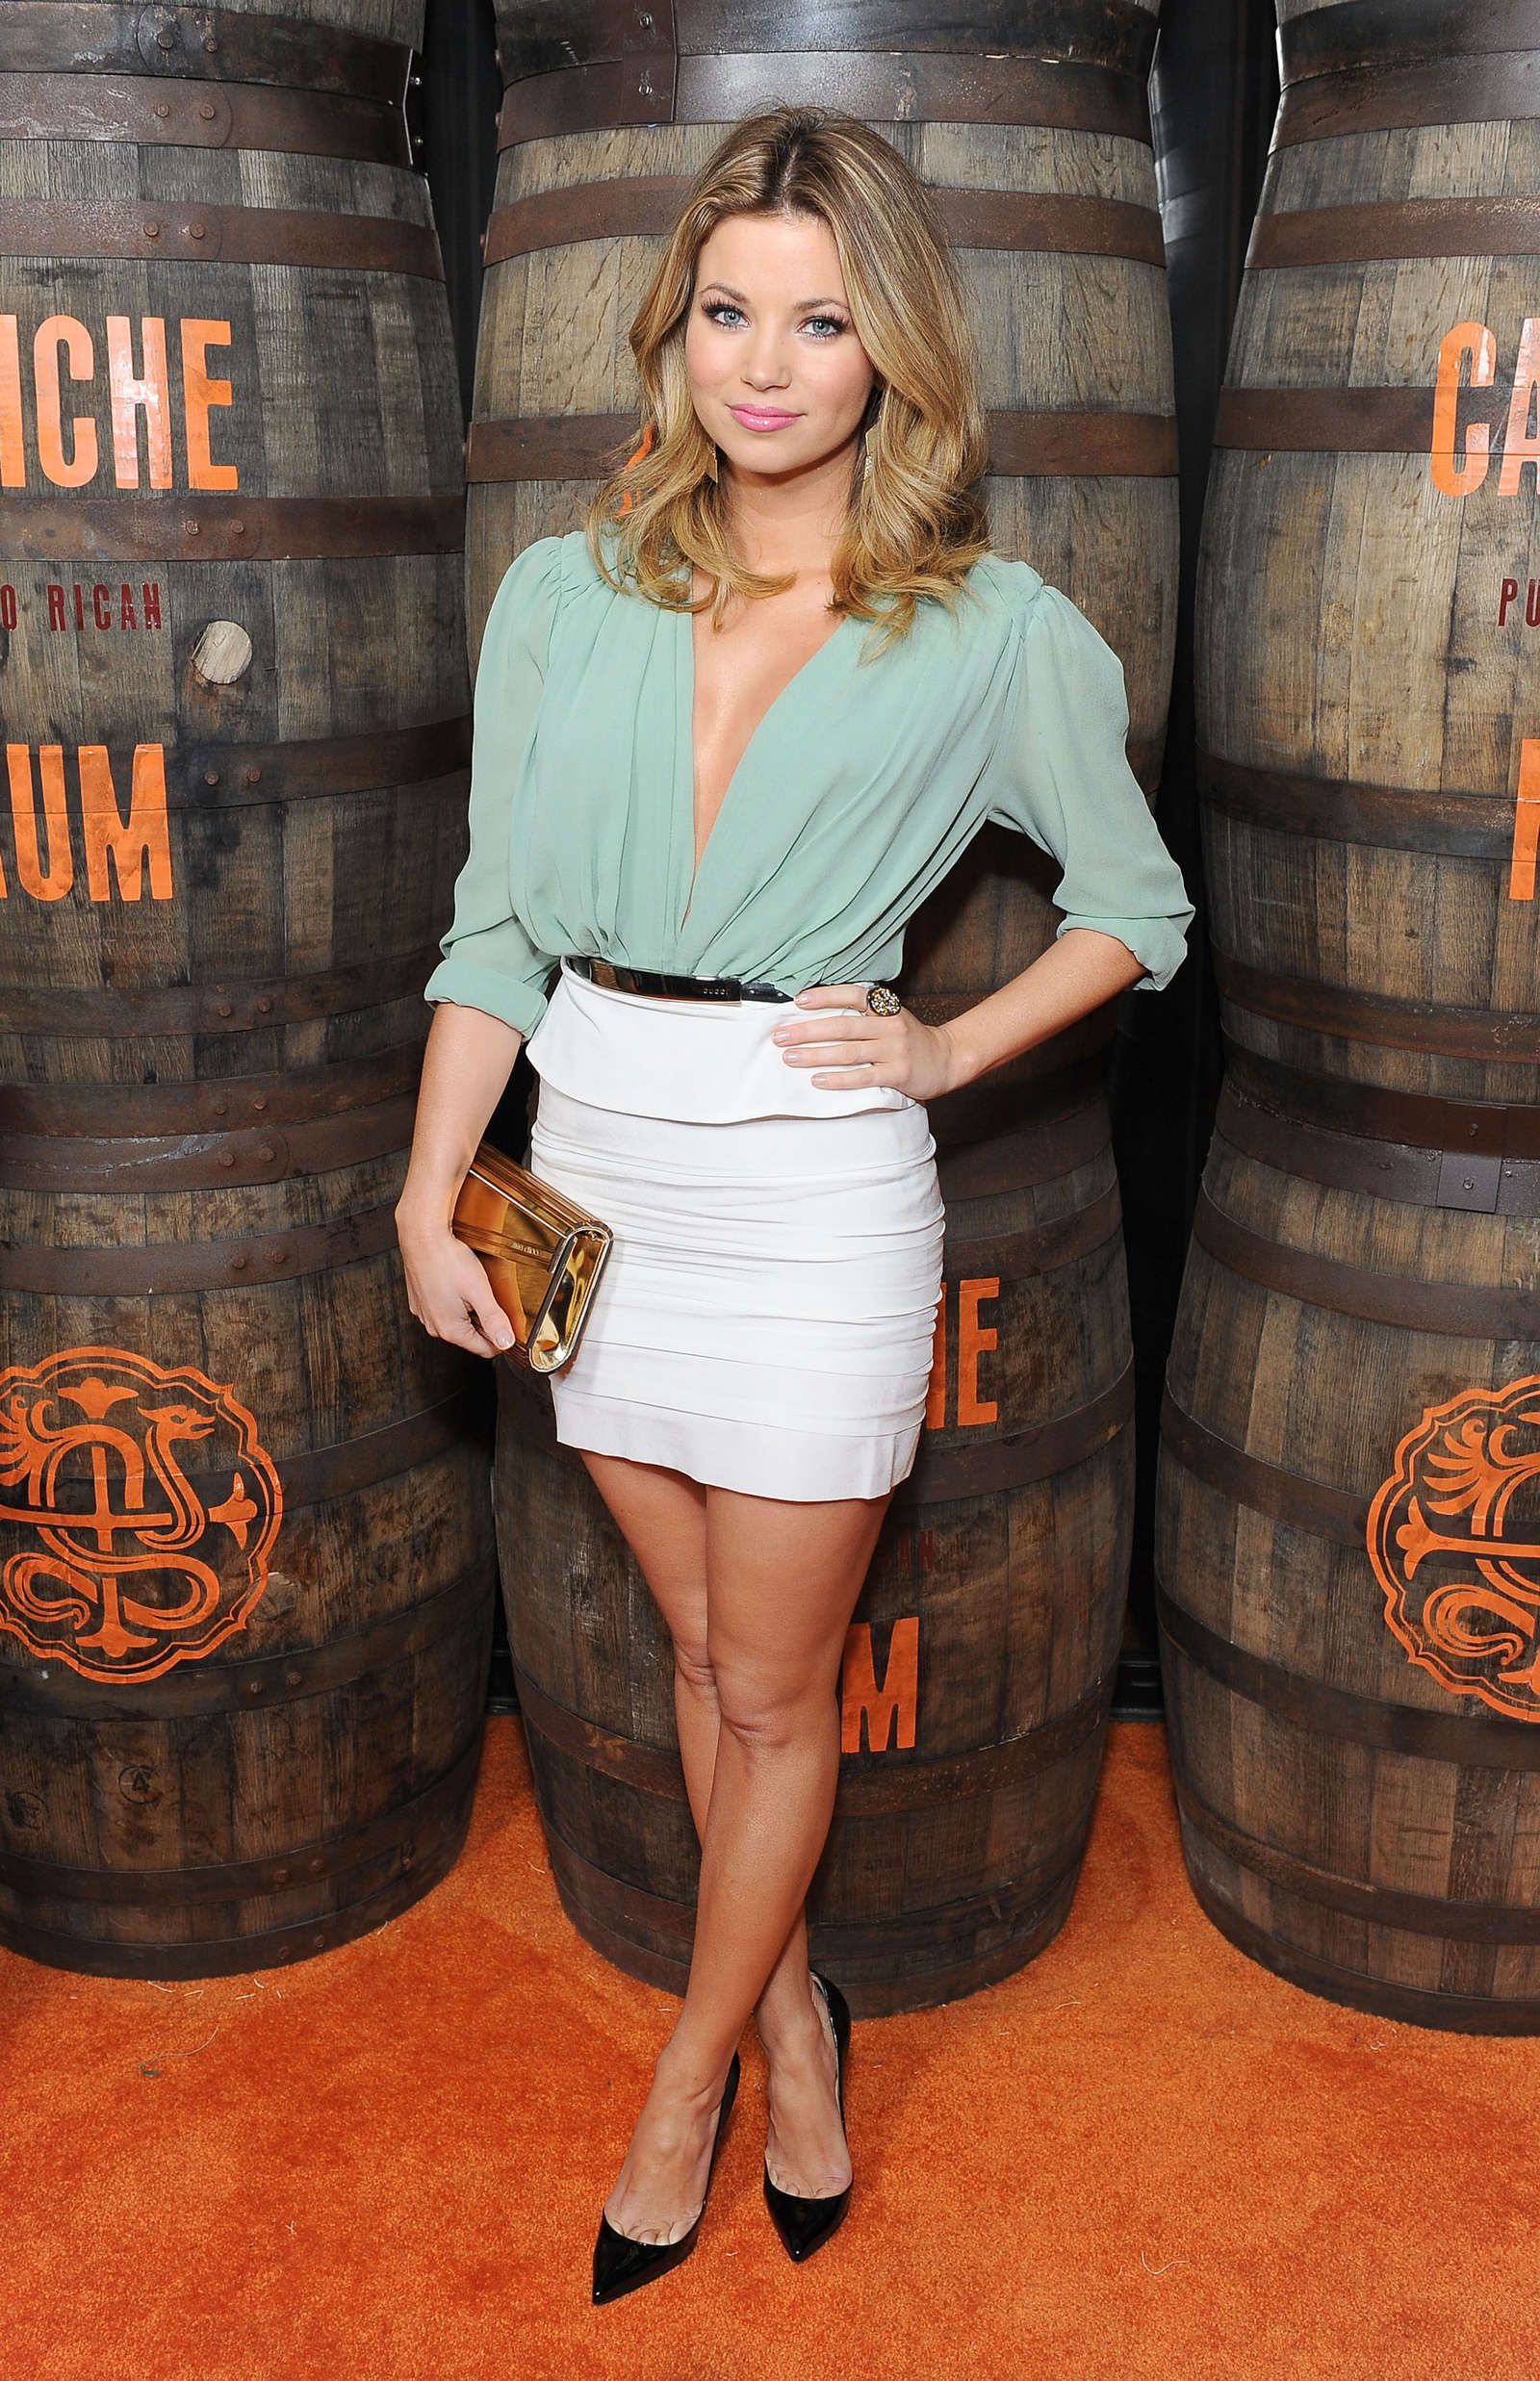 Amber Lancaster Launch of Caliche Rum in Hollywood